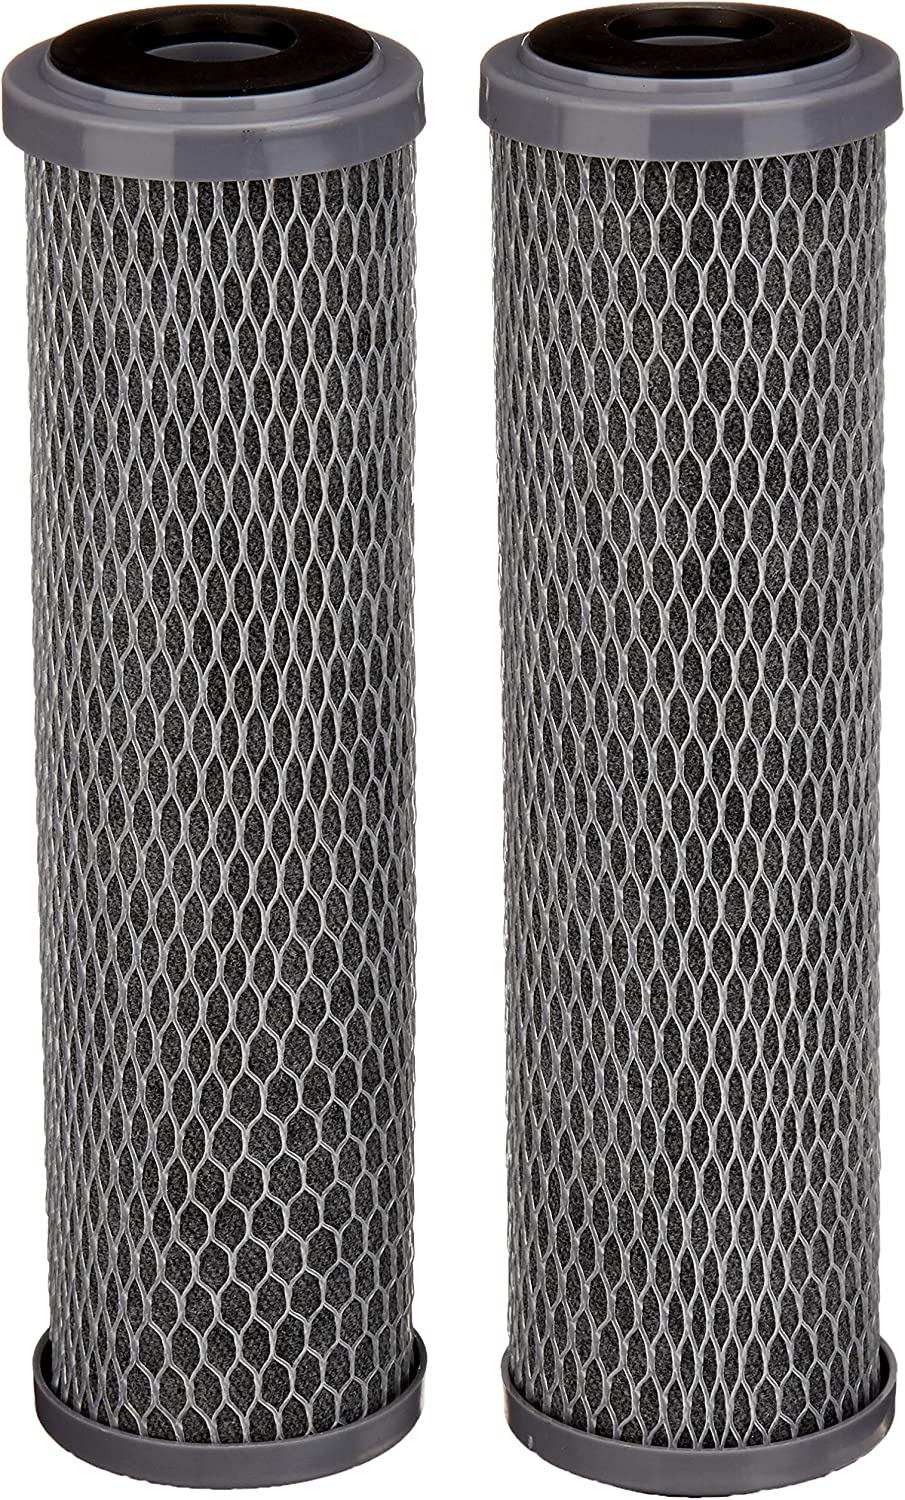 AmazonBasics AMZN-SCWH-5-2PK Standard Duty Water 15,000 Gallons, Equivalent to Culligan SCWH-5, 2-Pack Whole House Replacement Filter, White